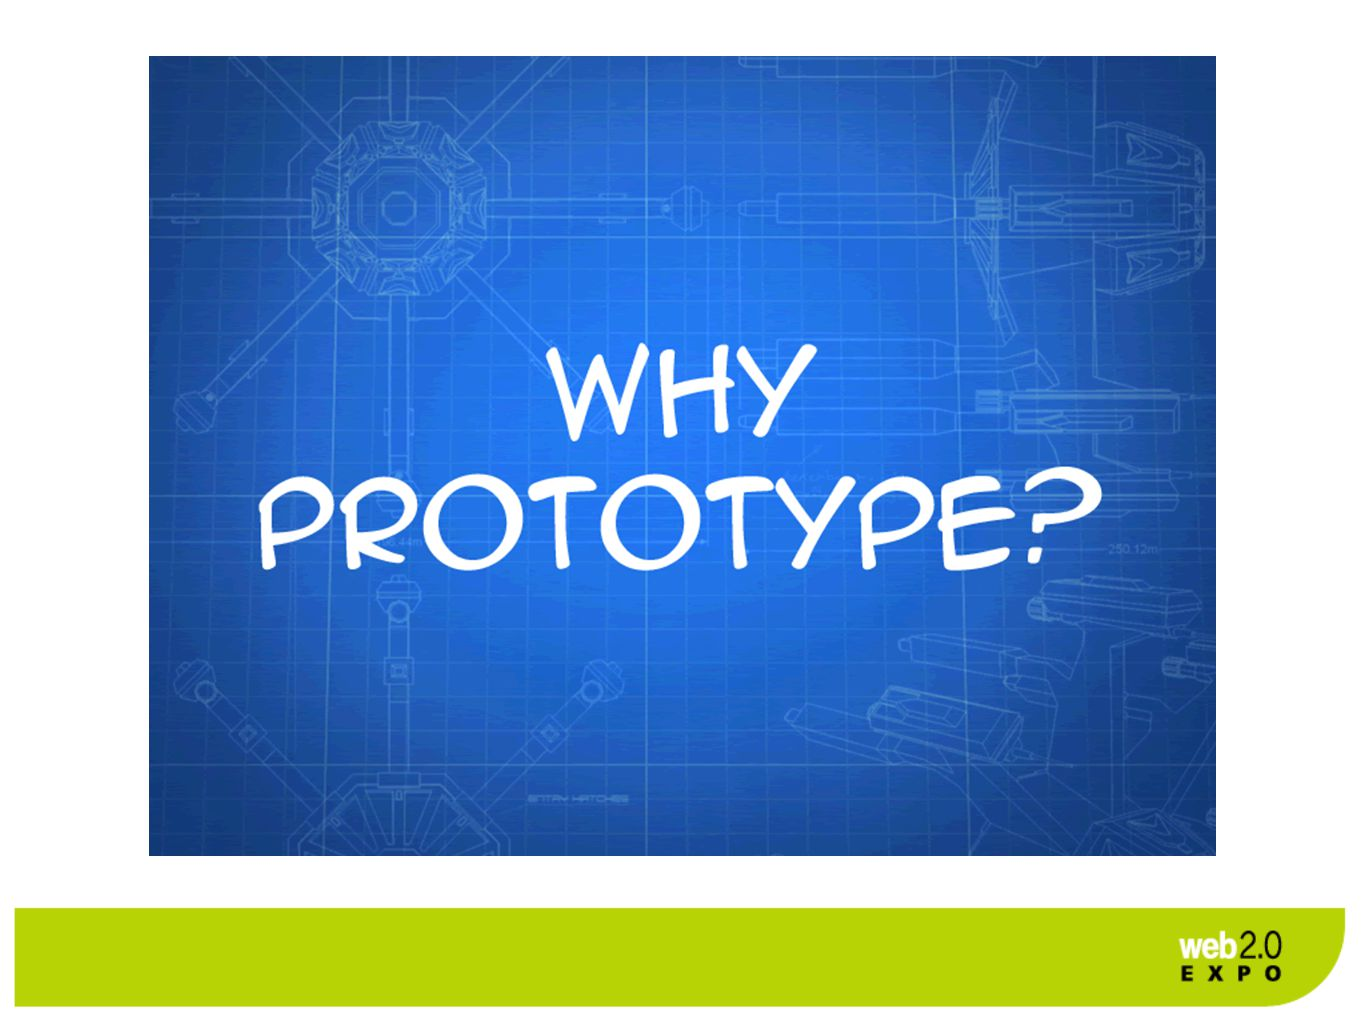 Why prototype?